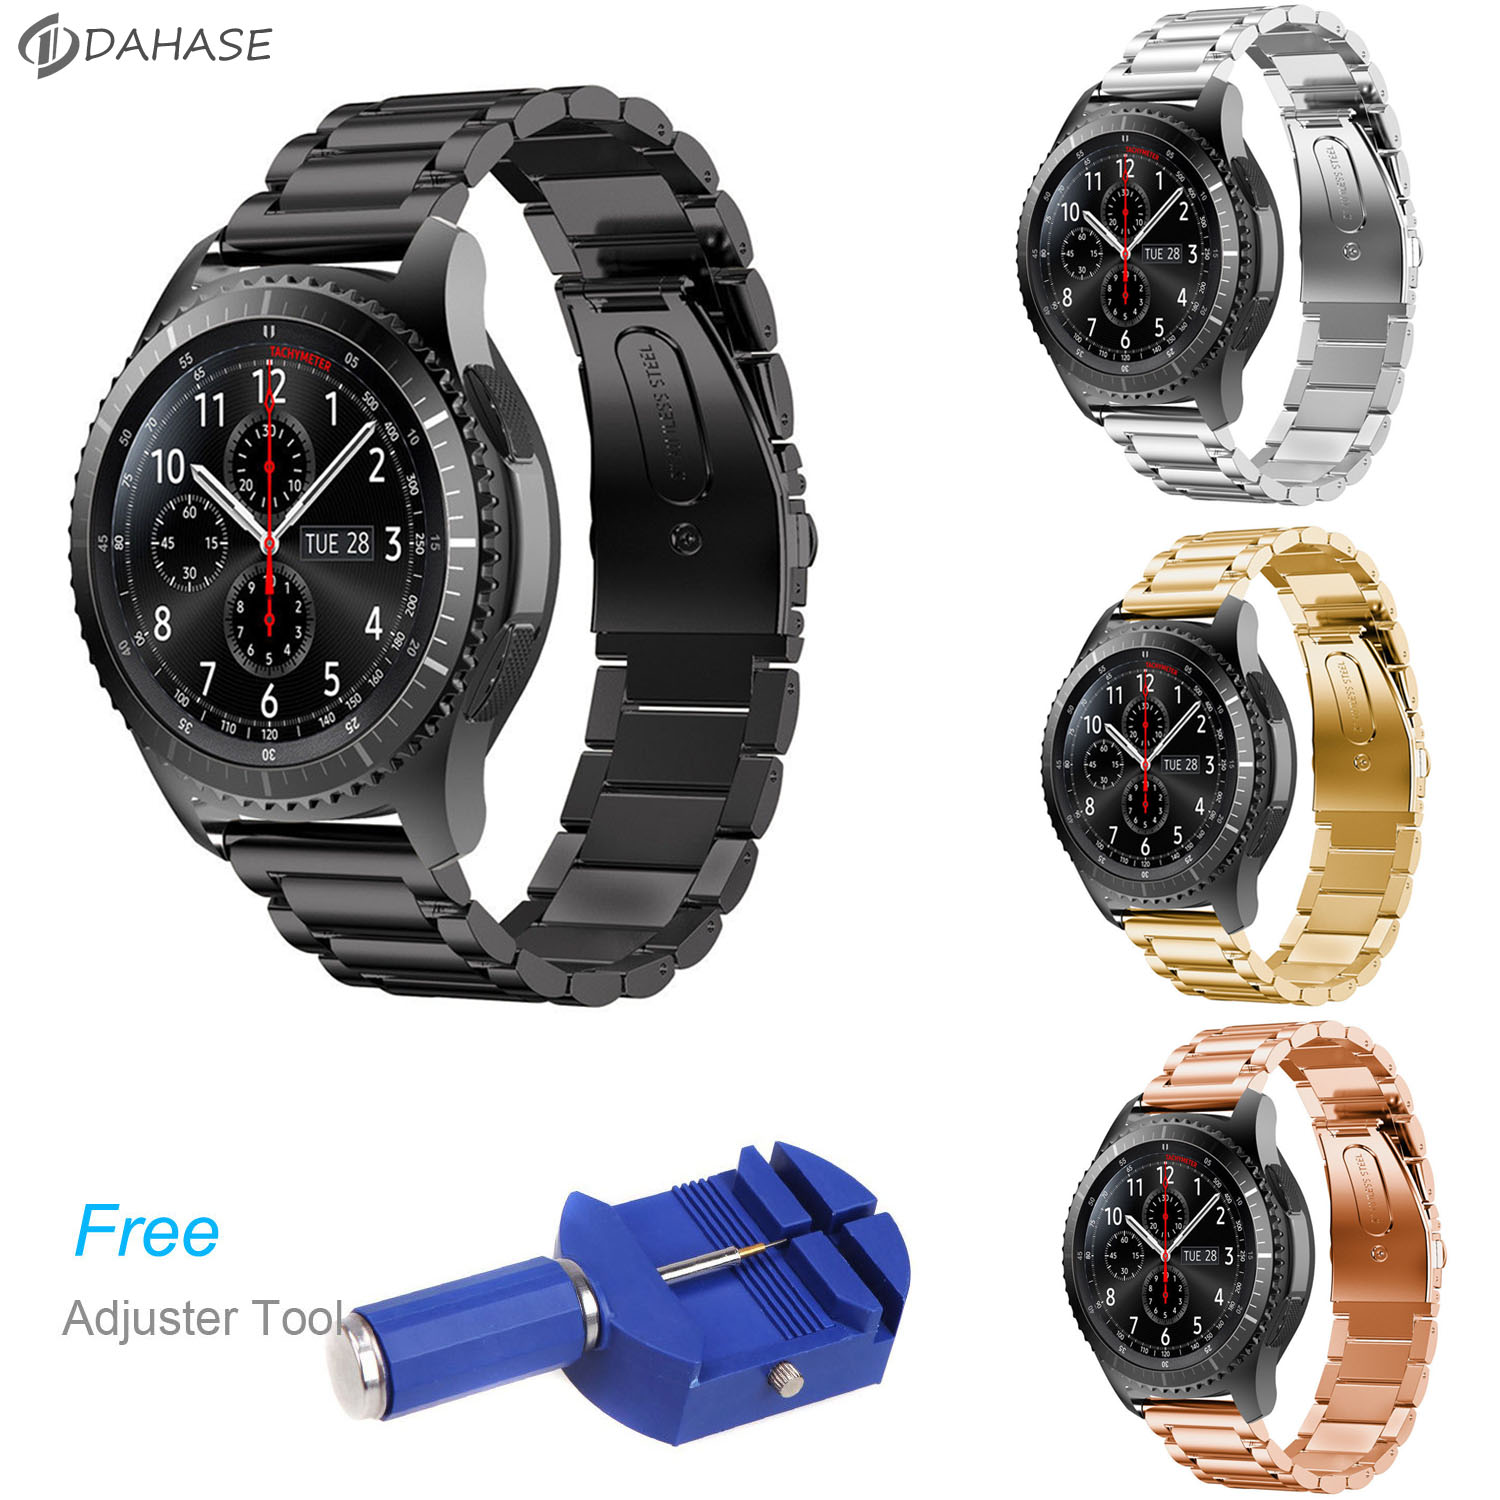 DAHASE Stainless Steel Watch Band for Samsung Gear S3 Frontier Strap for Gear S3 Classic Smart Watch Bracelet with Adjust Tool подвесной светильник maytoni vesta arm331 01 r